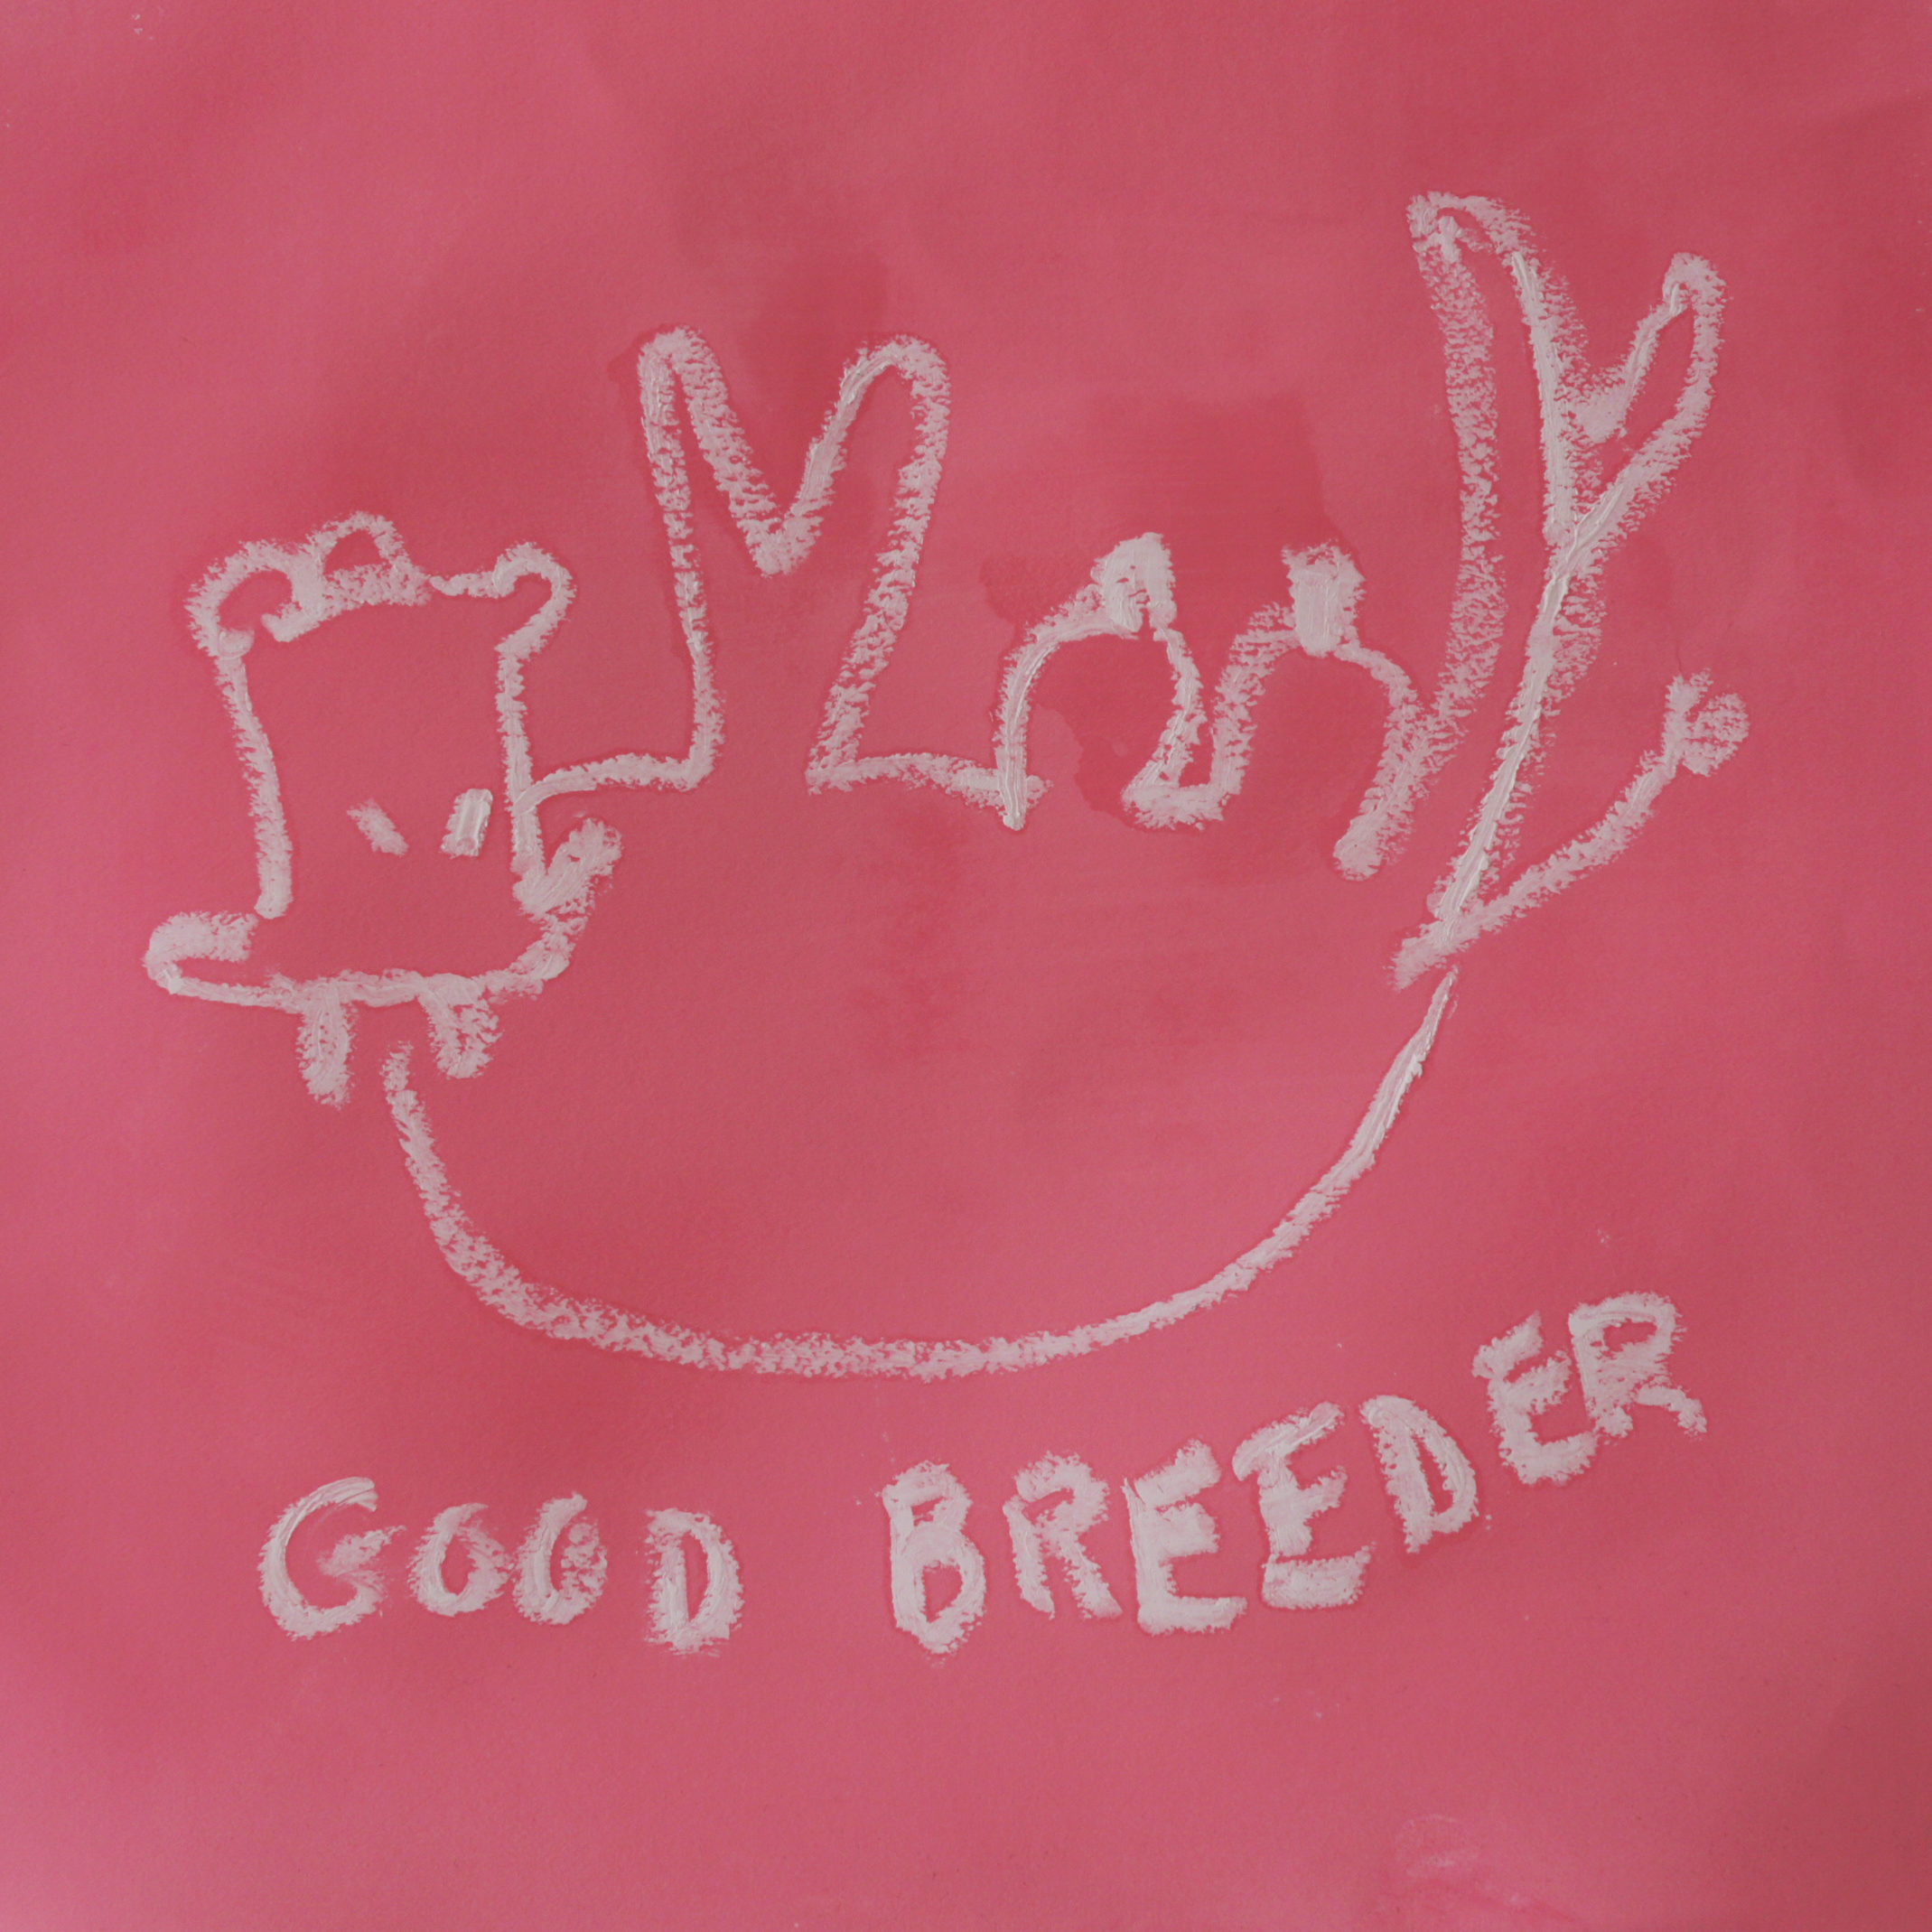 Good Breeder I , 2018  Gouache and oil pastel on paper  16 x 16 inches    Good Breeder  depicts an overturned cow, udders bulging, along with the title phrase. The work references the notion of women as breeders: here, fertility becomes a coveted virtue at the expense of individuality. Women have been reduced to their most primal form as reproductive vessels. The image is drawn from the artist's painting  Pink Lady  and references the debutante culture of the American South, where the phrase is most widely used.